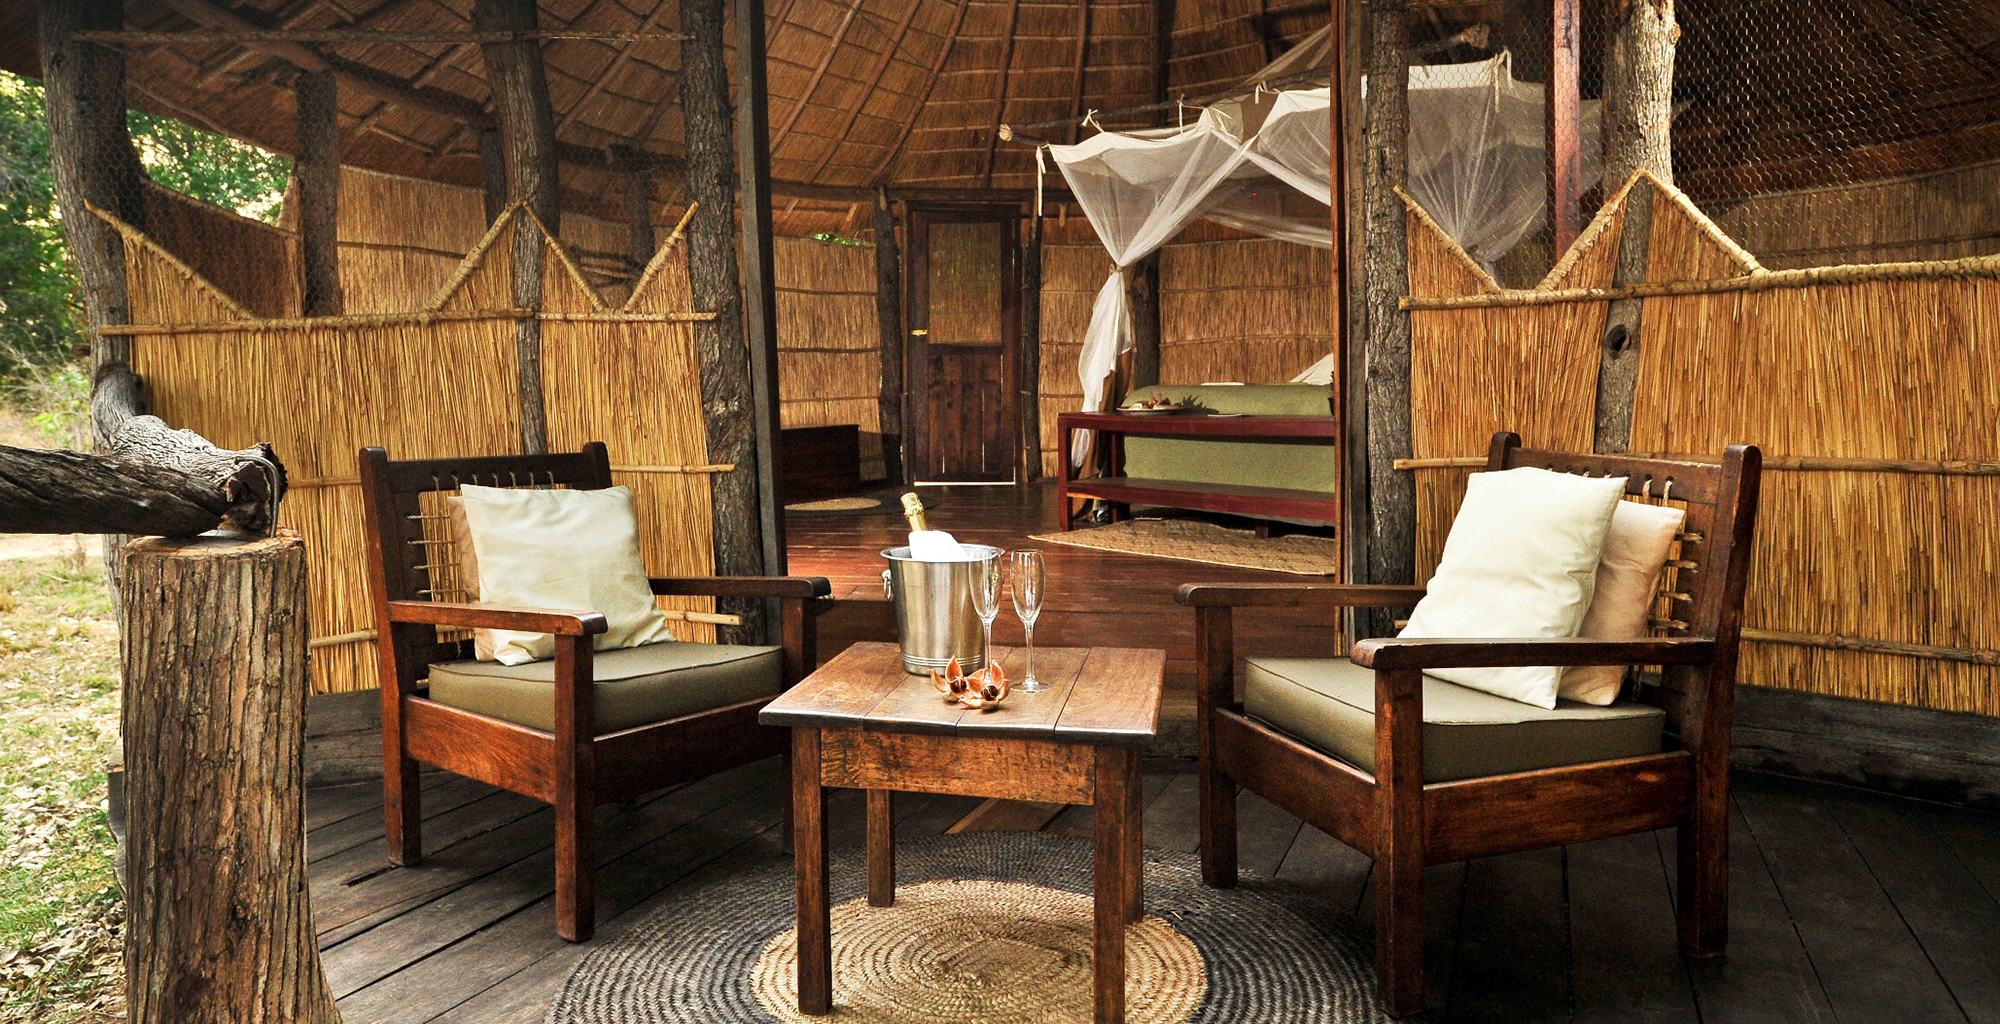 Zambia-Nsolo-Camp-Bedroom-Deck